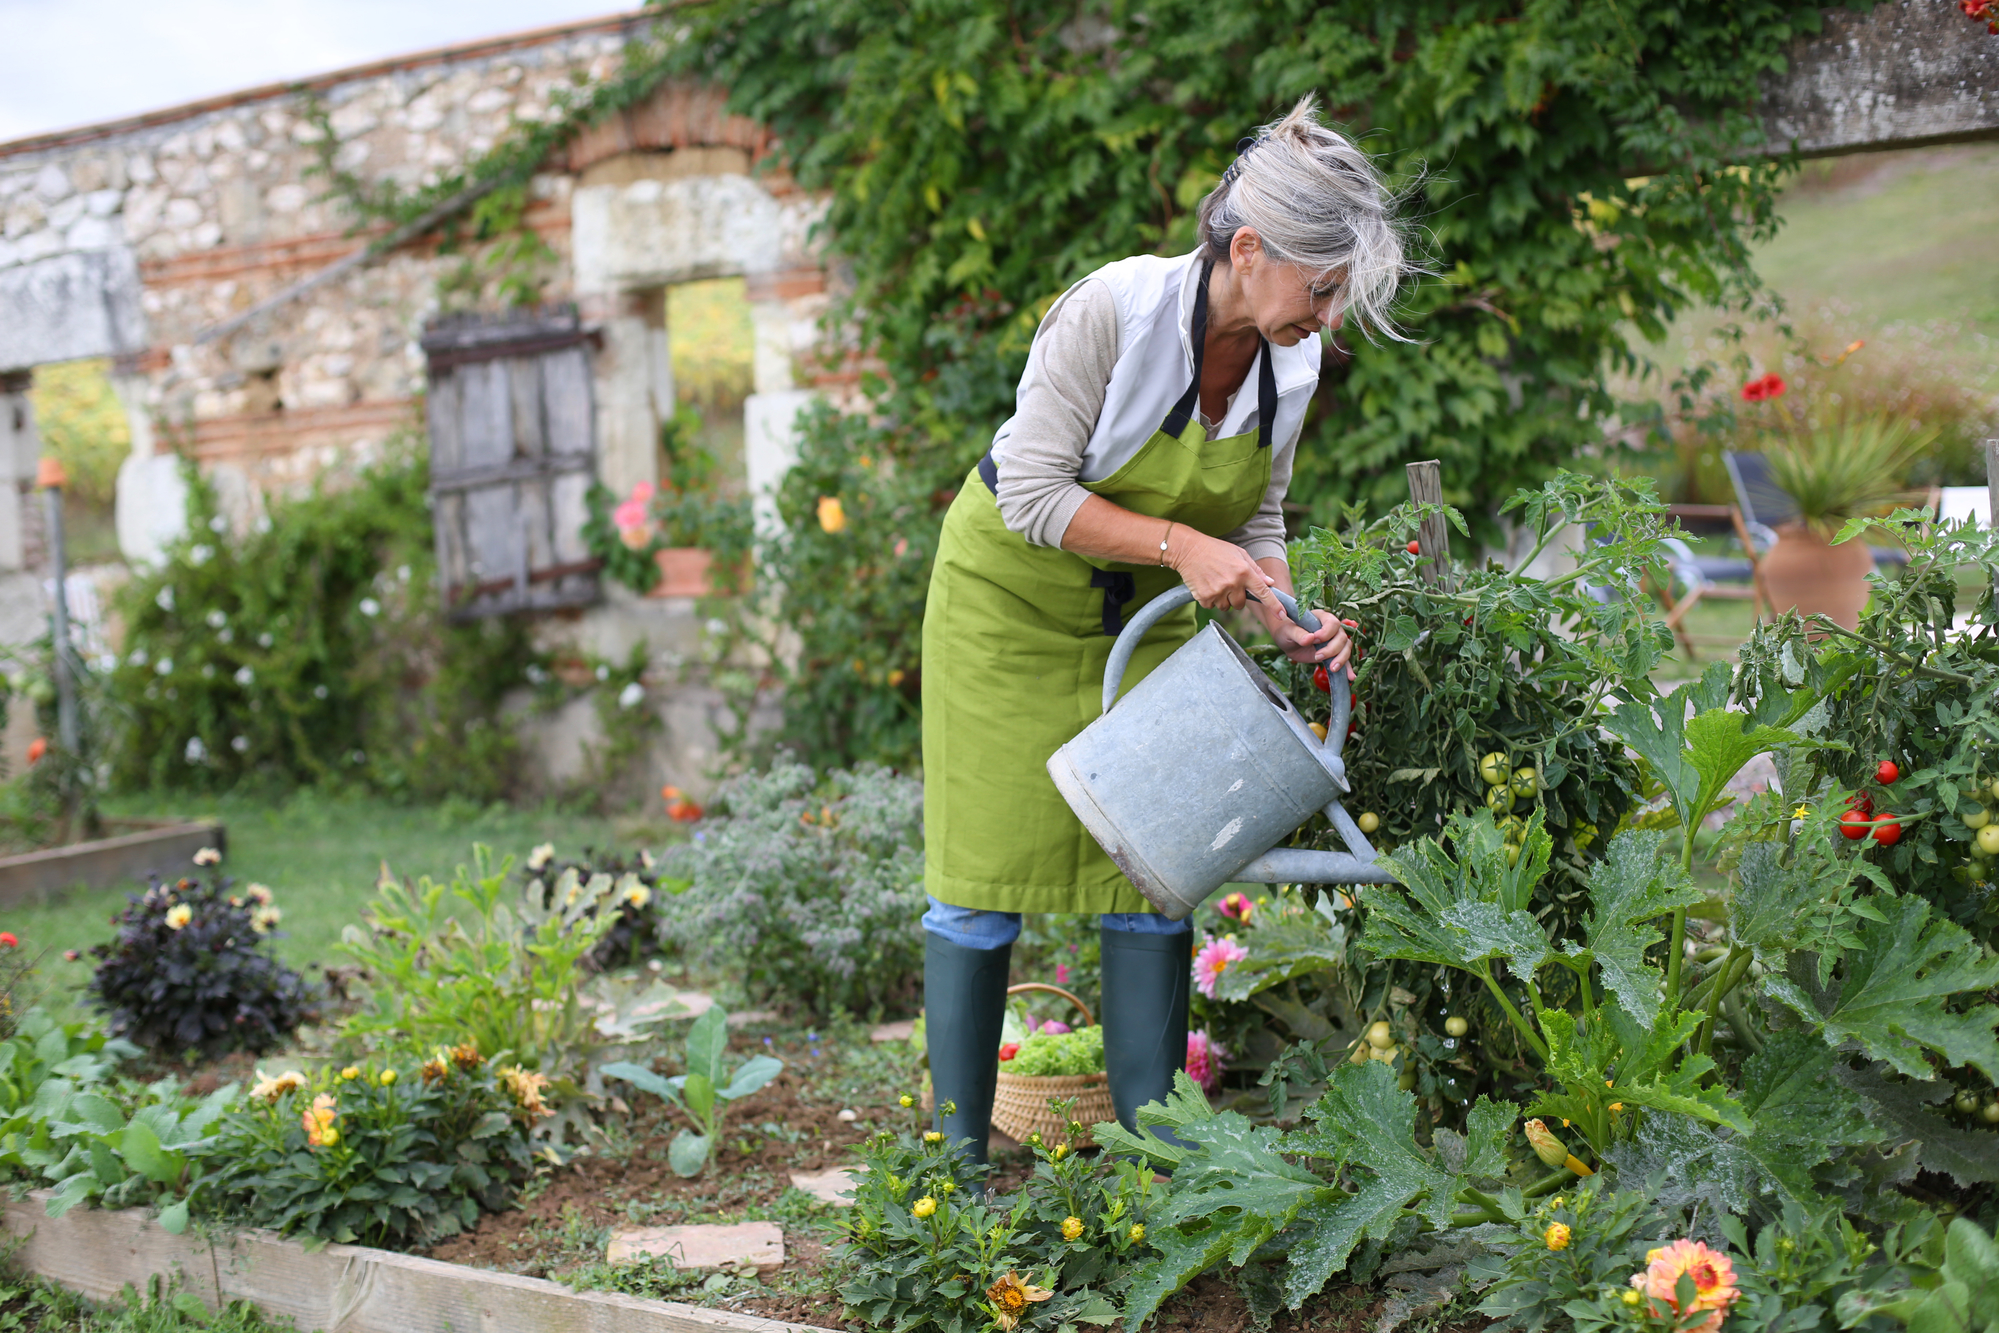 people gardening pictures - HD1280×960